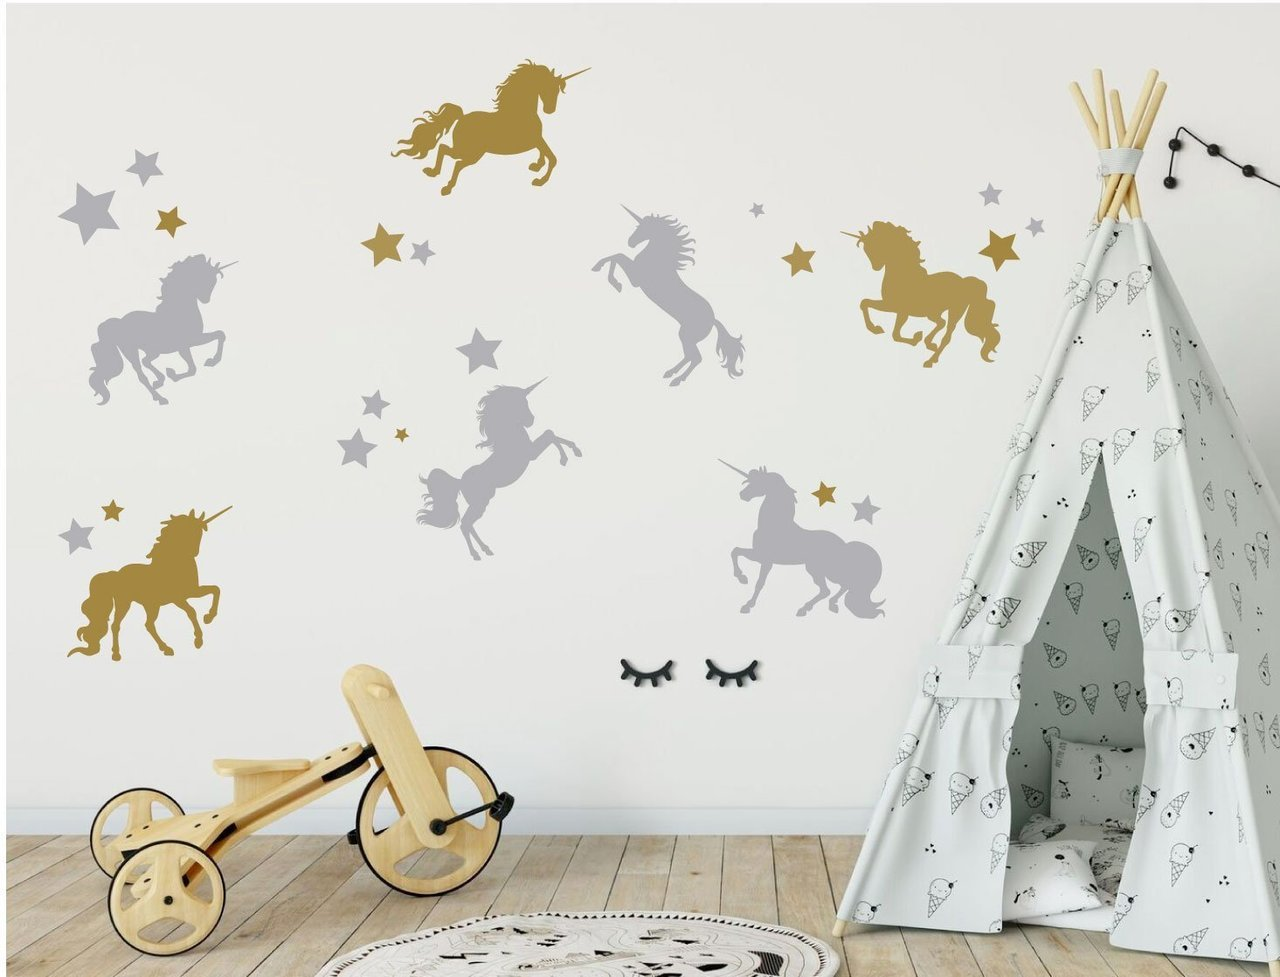 Unicorn Wall Decor - Full Wall Mural